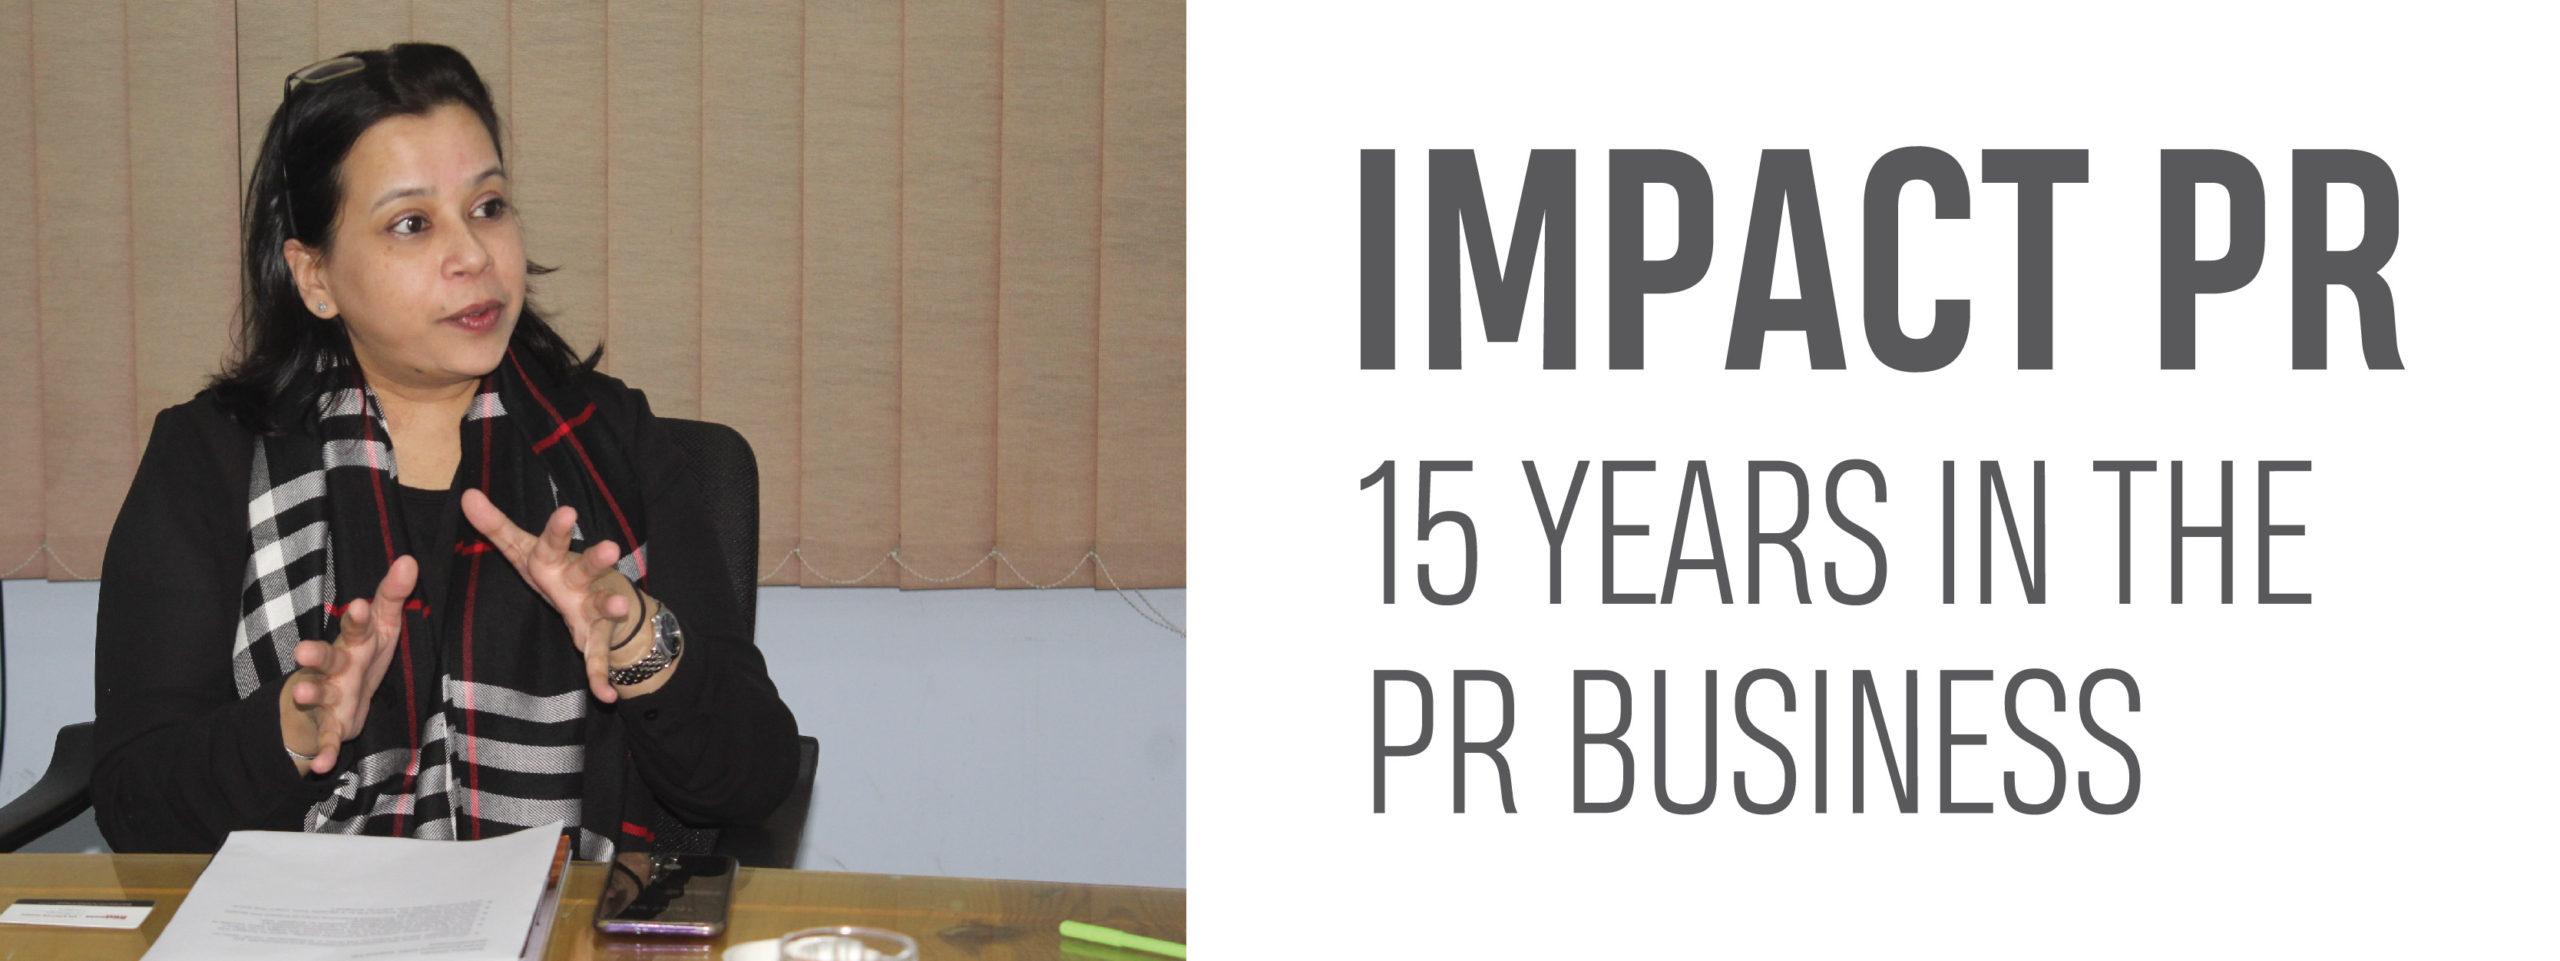 IMPACT PR, 15 YEARS IN THE PR BUSINESS